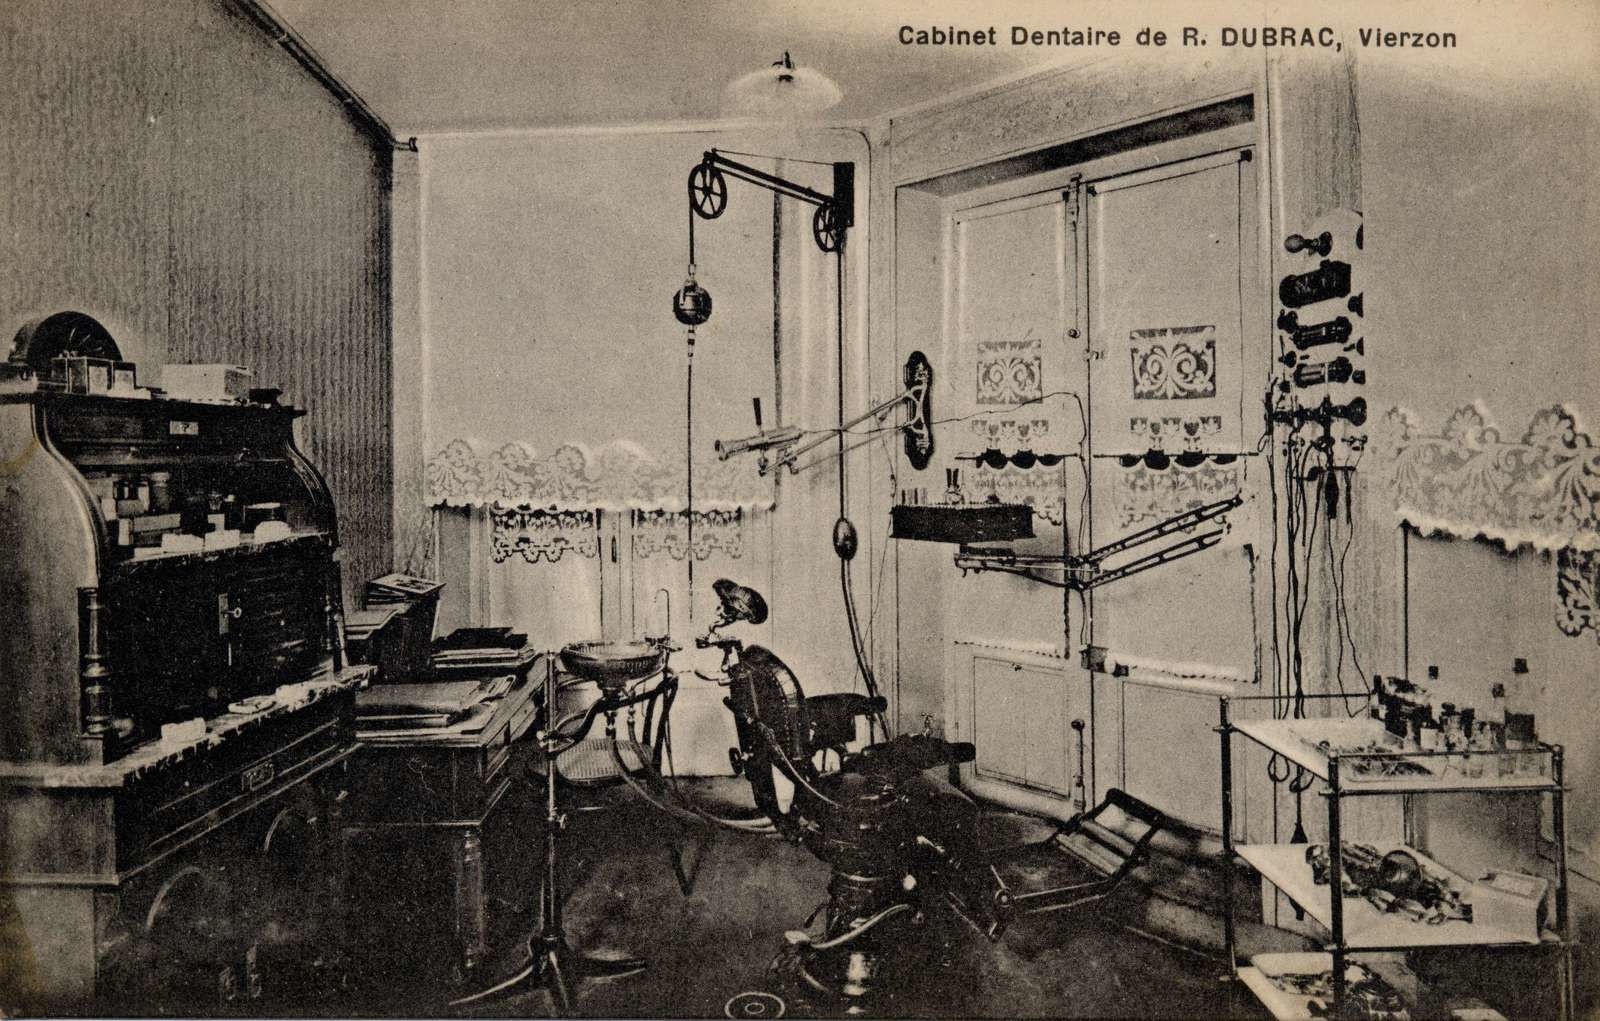 Cabinet Dentaire Mille on